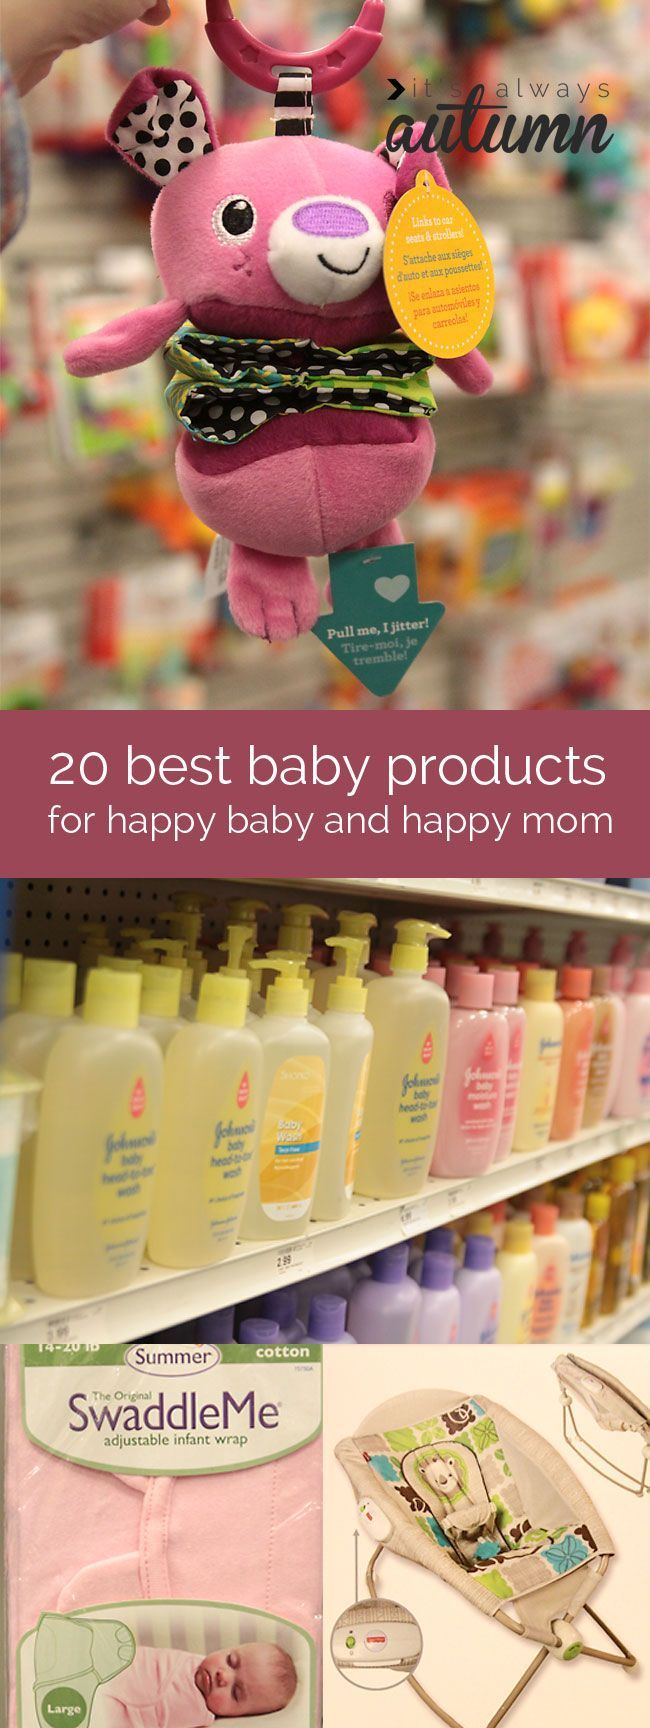 best products for baby to make life easier for new mom - I wish I'd had some of these when my baby was born!